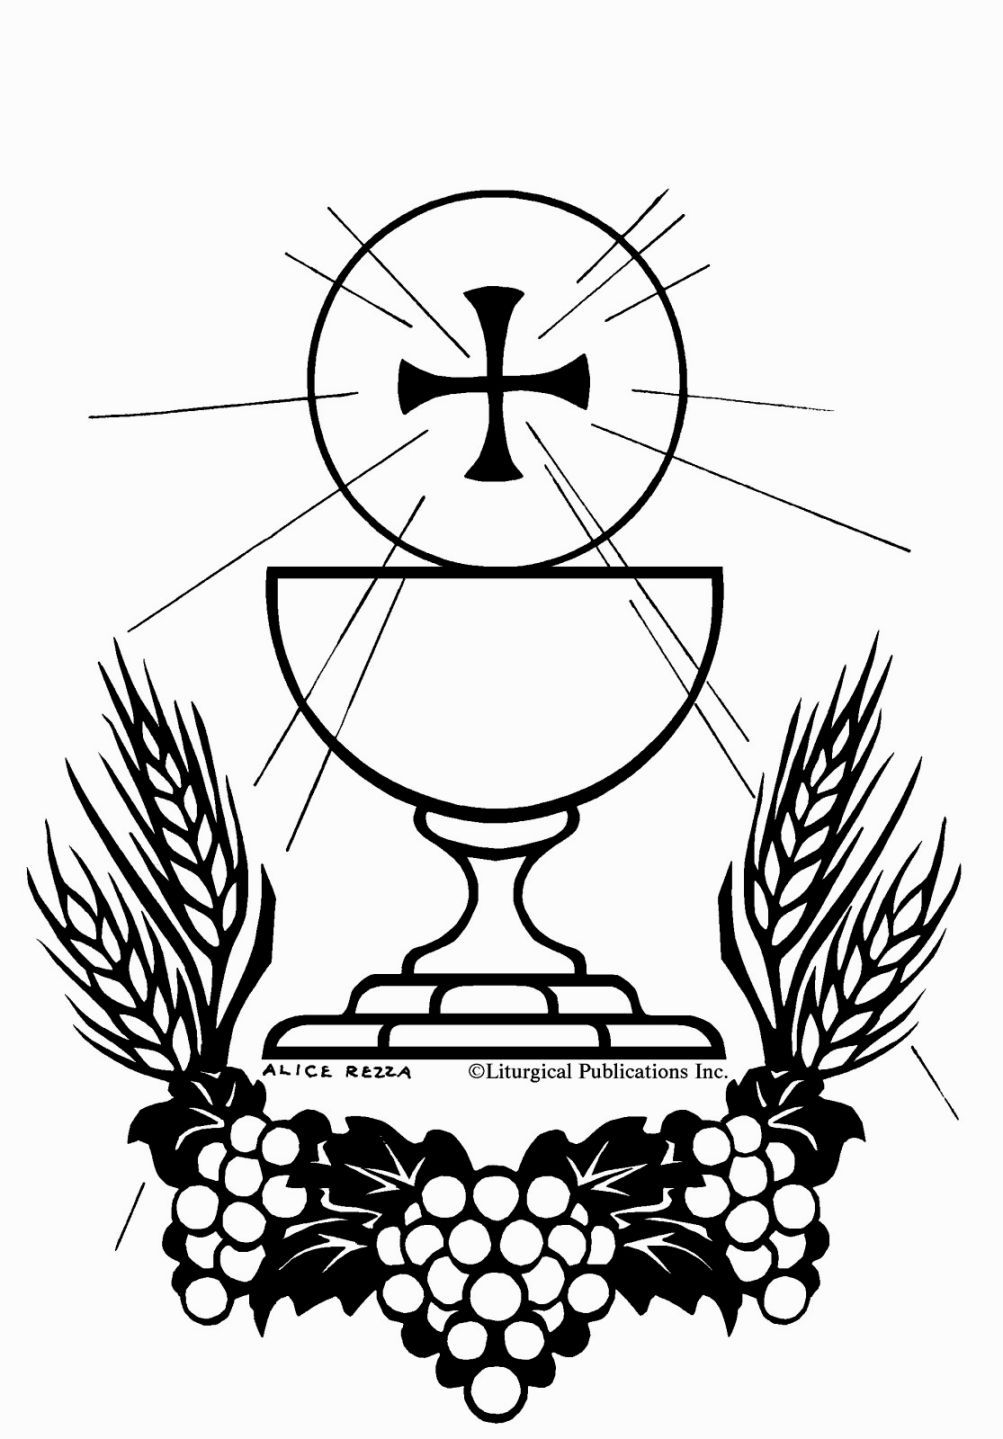 Eucharist Coloring Pages Tapete De Corpus Christi Pinturas De